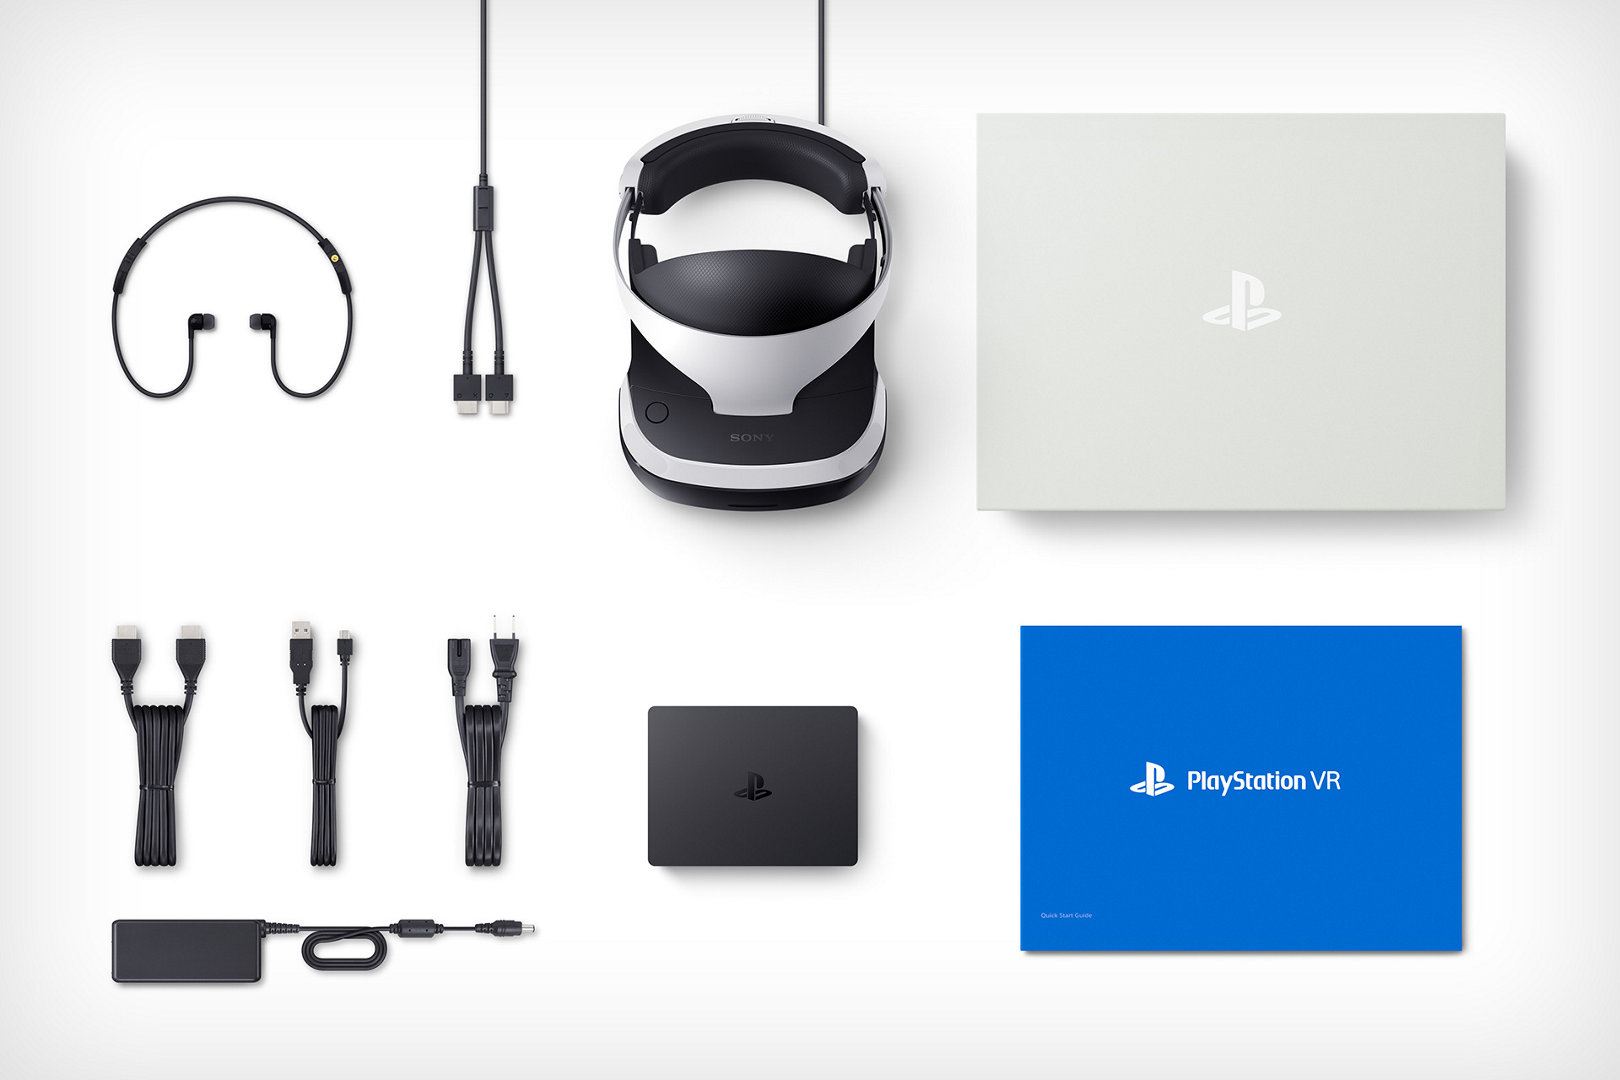 1597559477_ps-vr-zvr2-model-product-shot